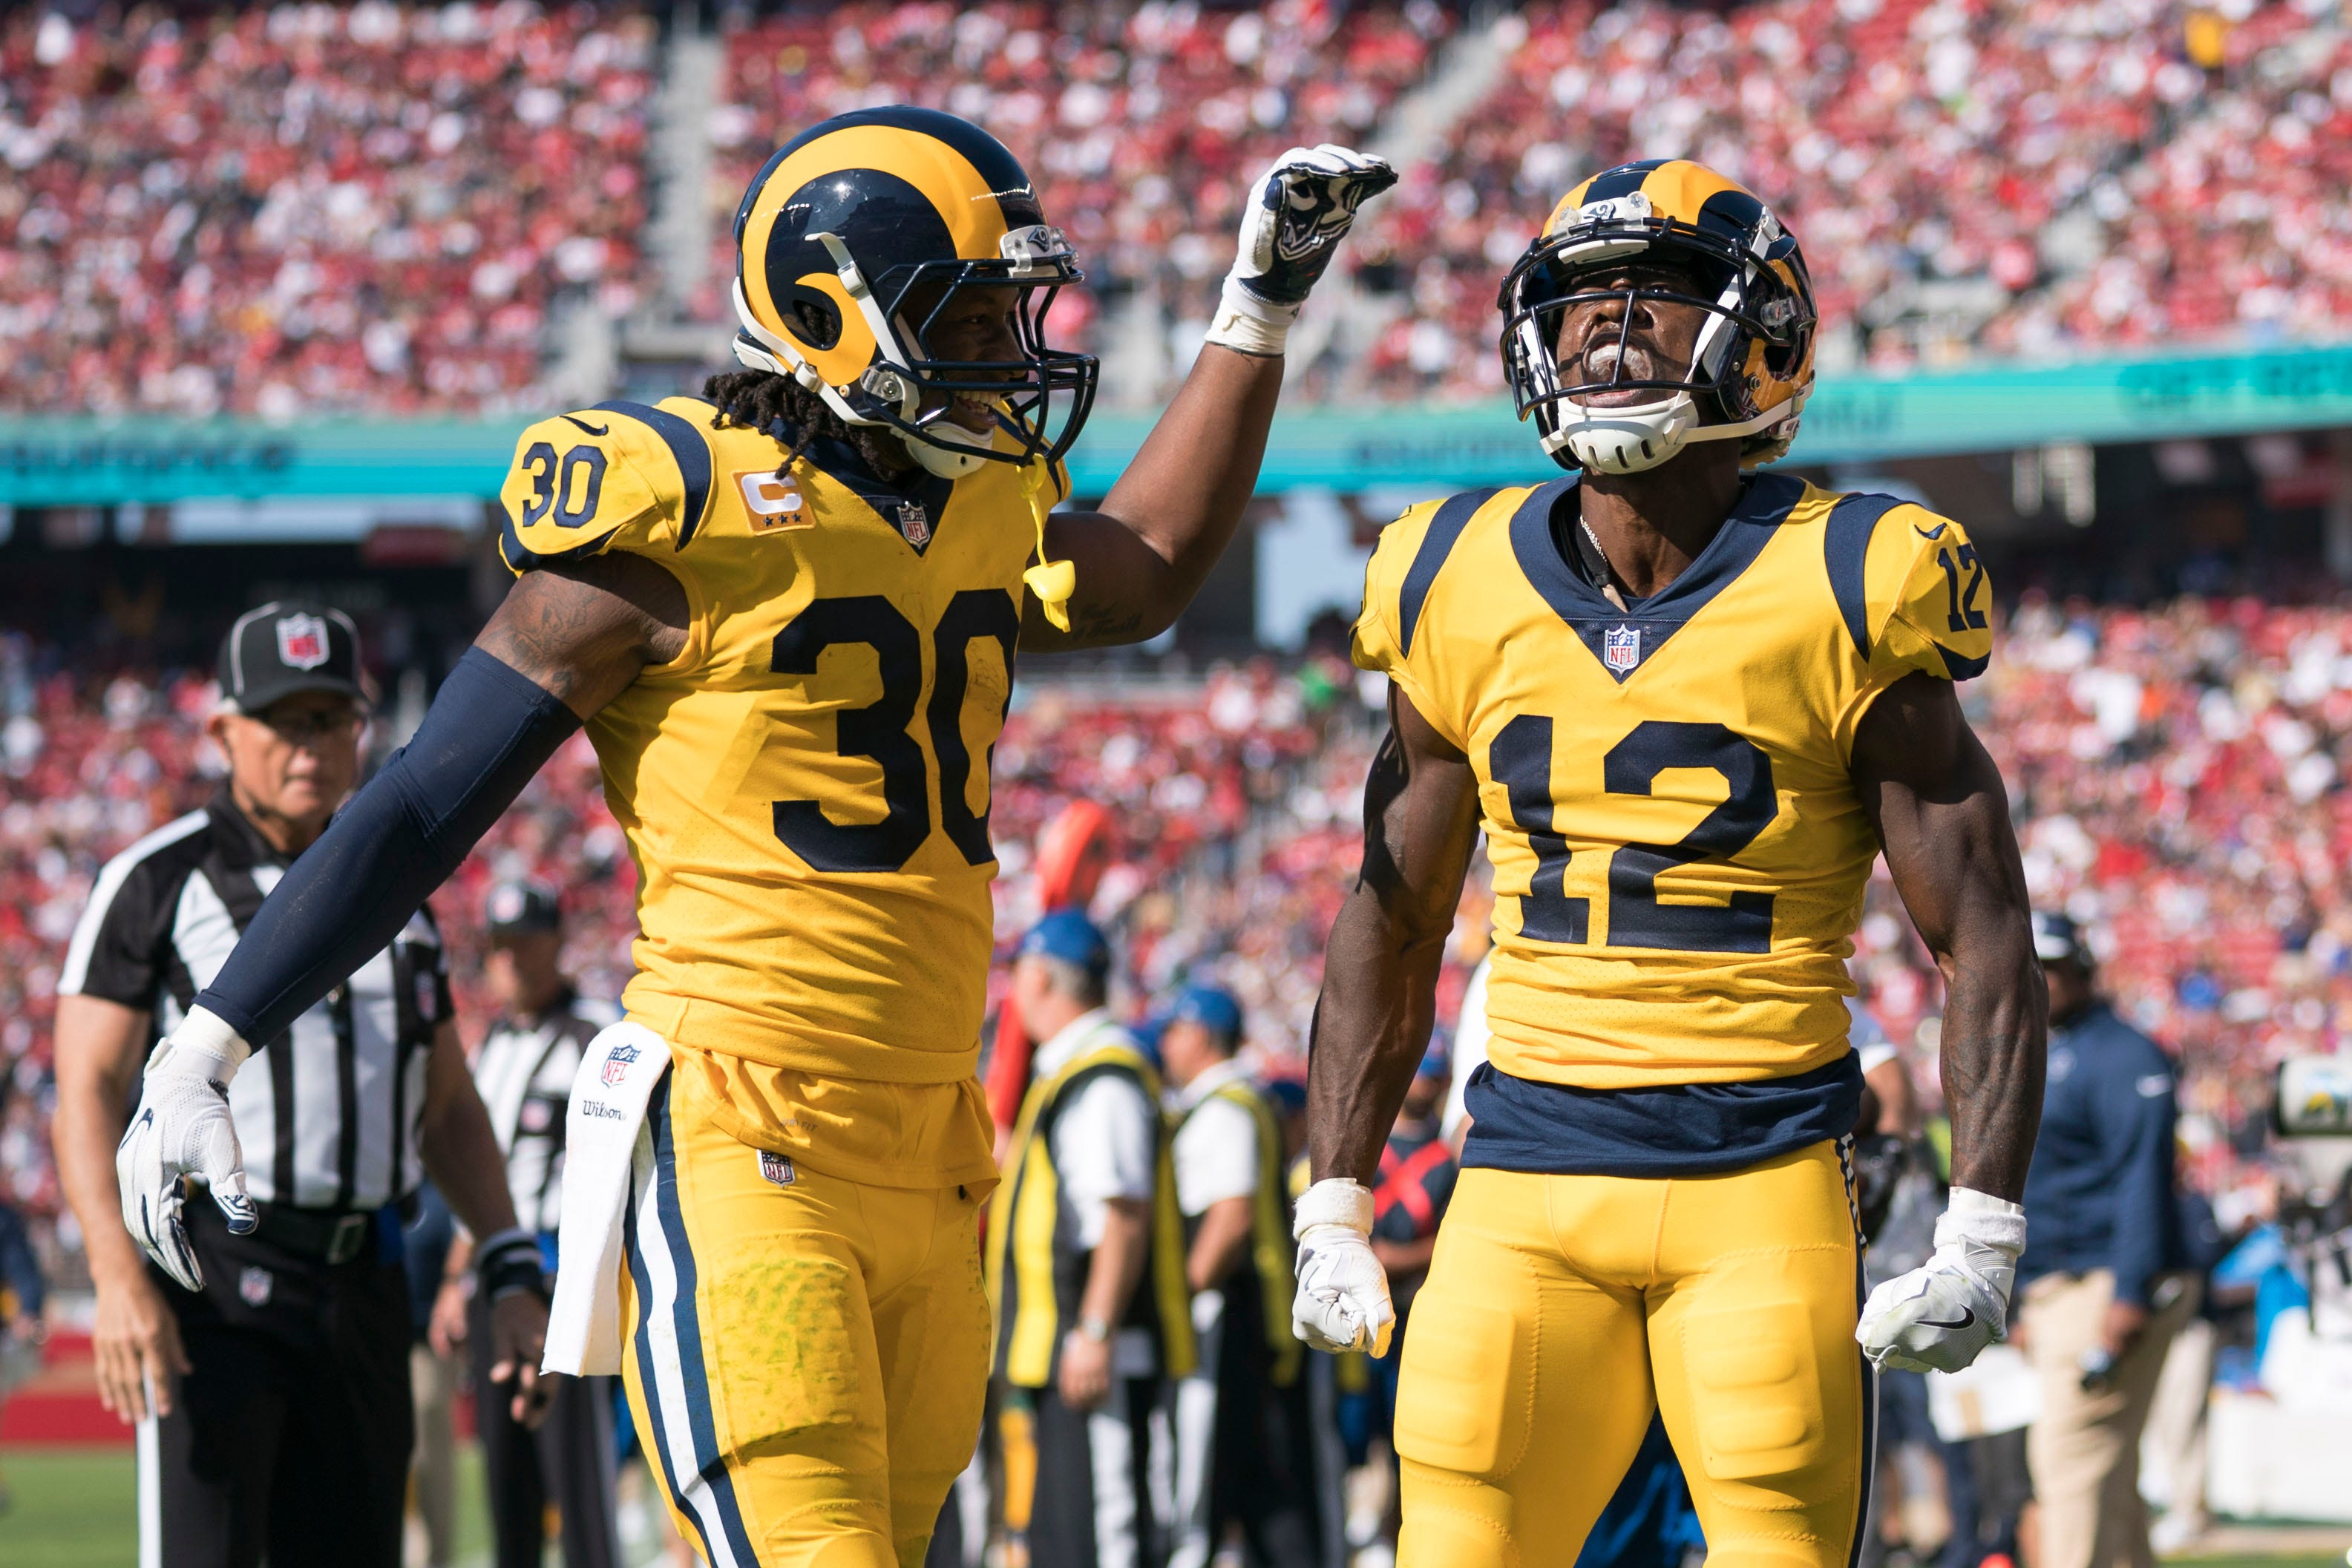 Green Bay Packers Next Opponent Quick Takes On The Los Angeles Rams